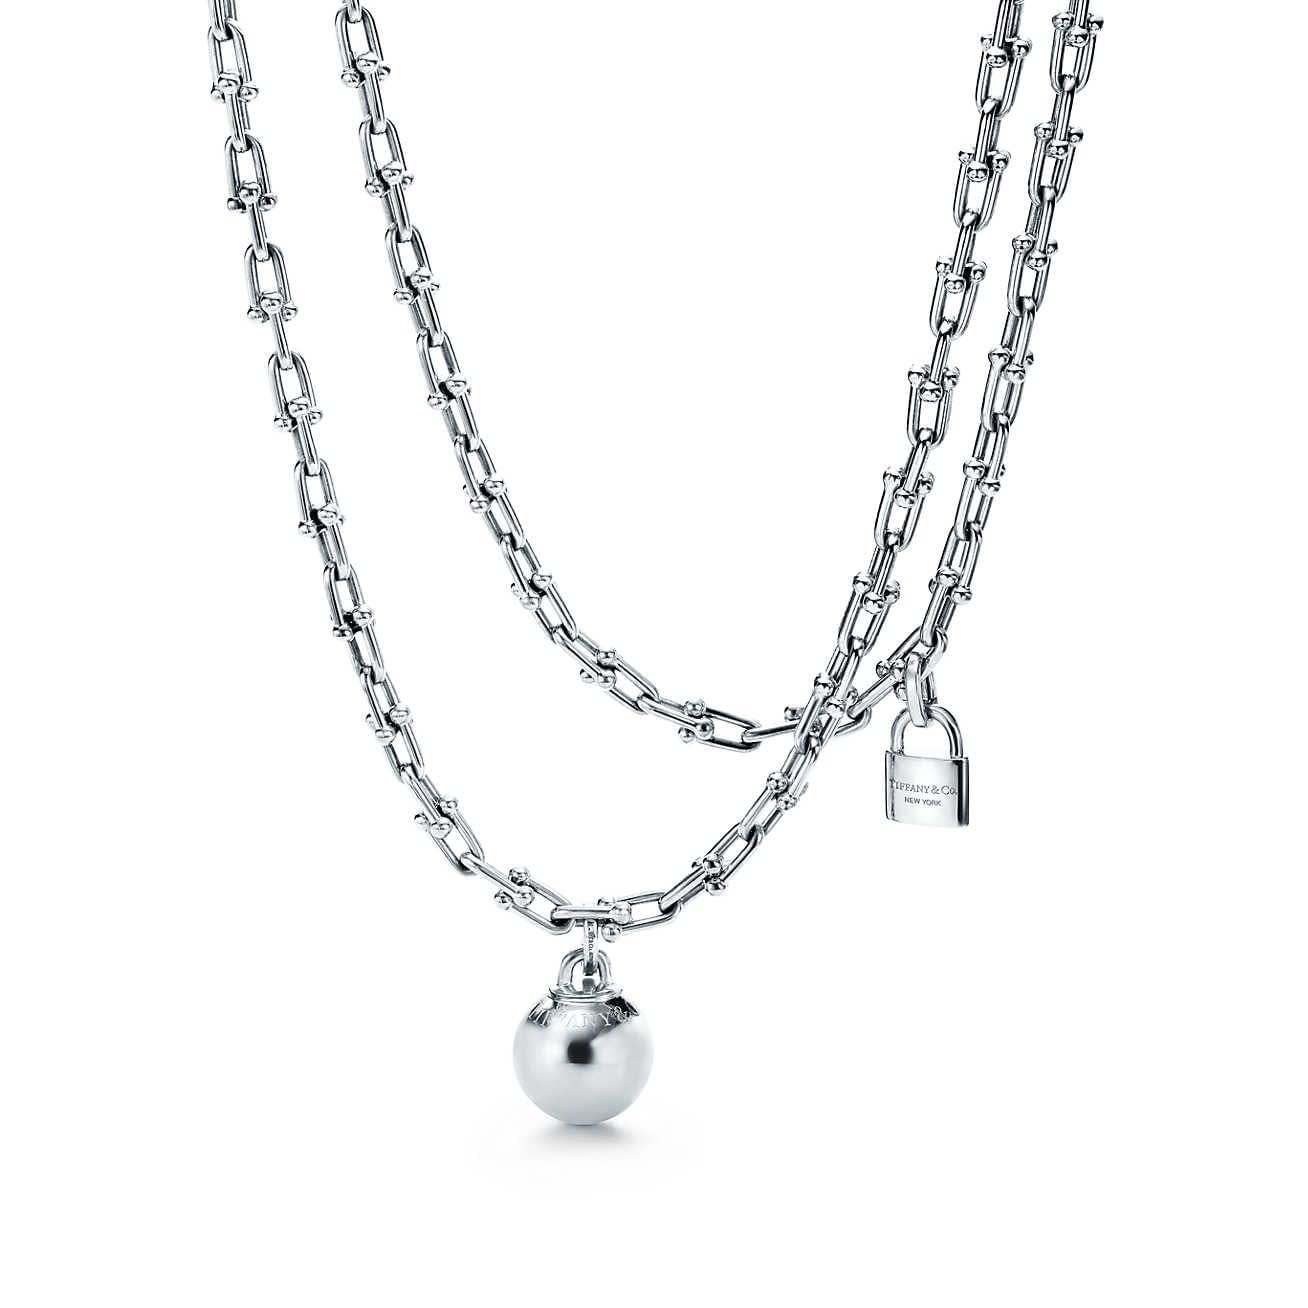 Mothers Day Gift ideas from Newport Living and Lifestyles Tiffany & Co. Tiffany HardWear wrap necklace ball and chain Wrap Necklace $2600